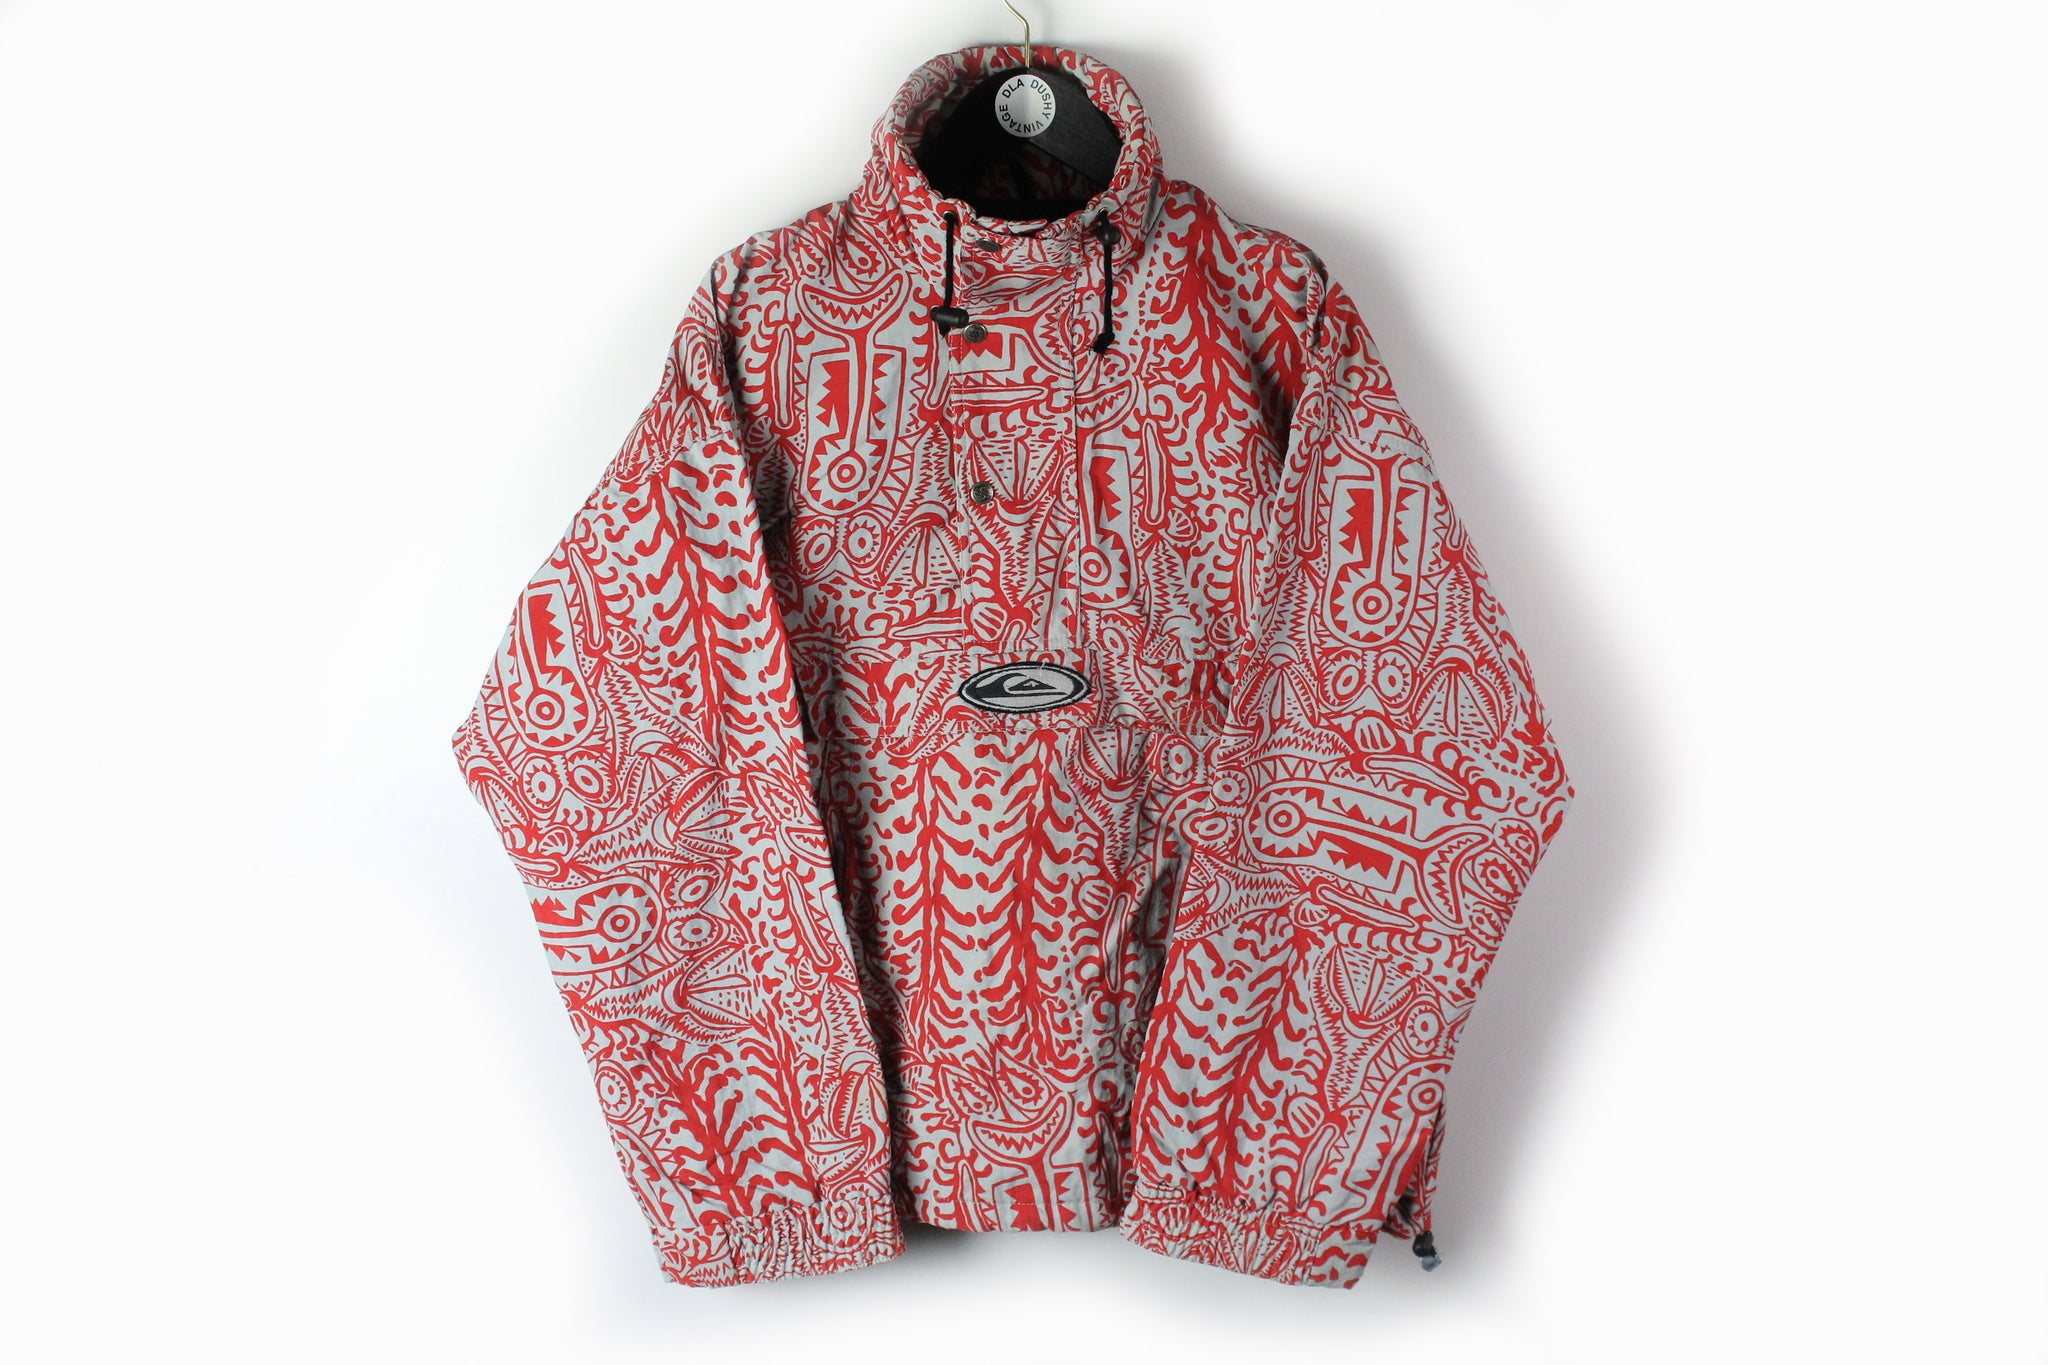 Vintage Quicksilver Anorak Jacket Medium red gray abstract pattern 90s snowboard winter gear jacket